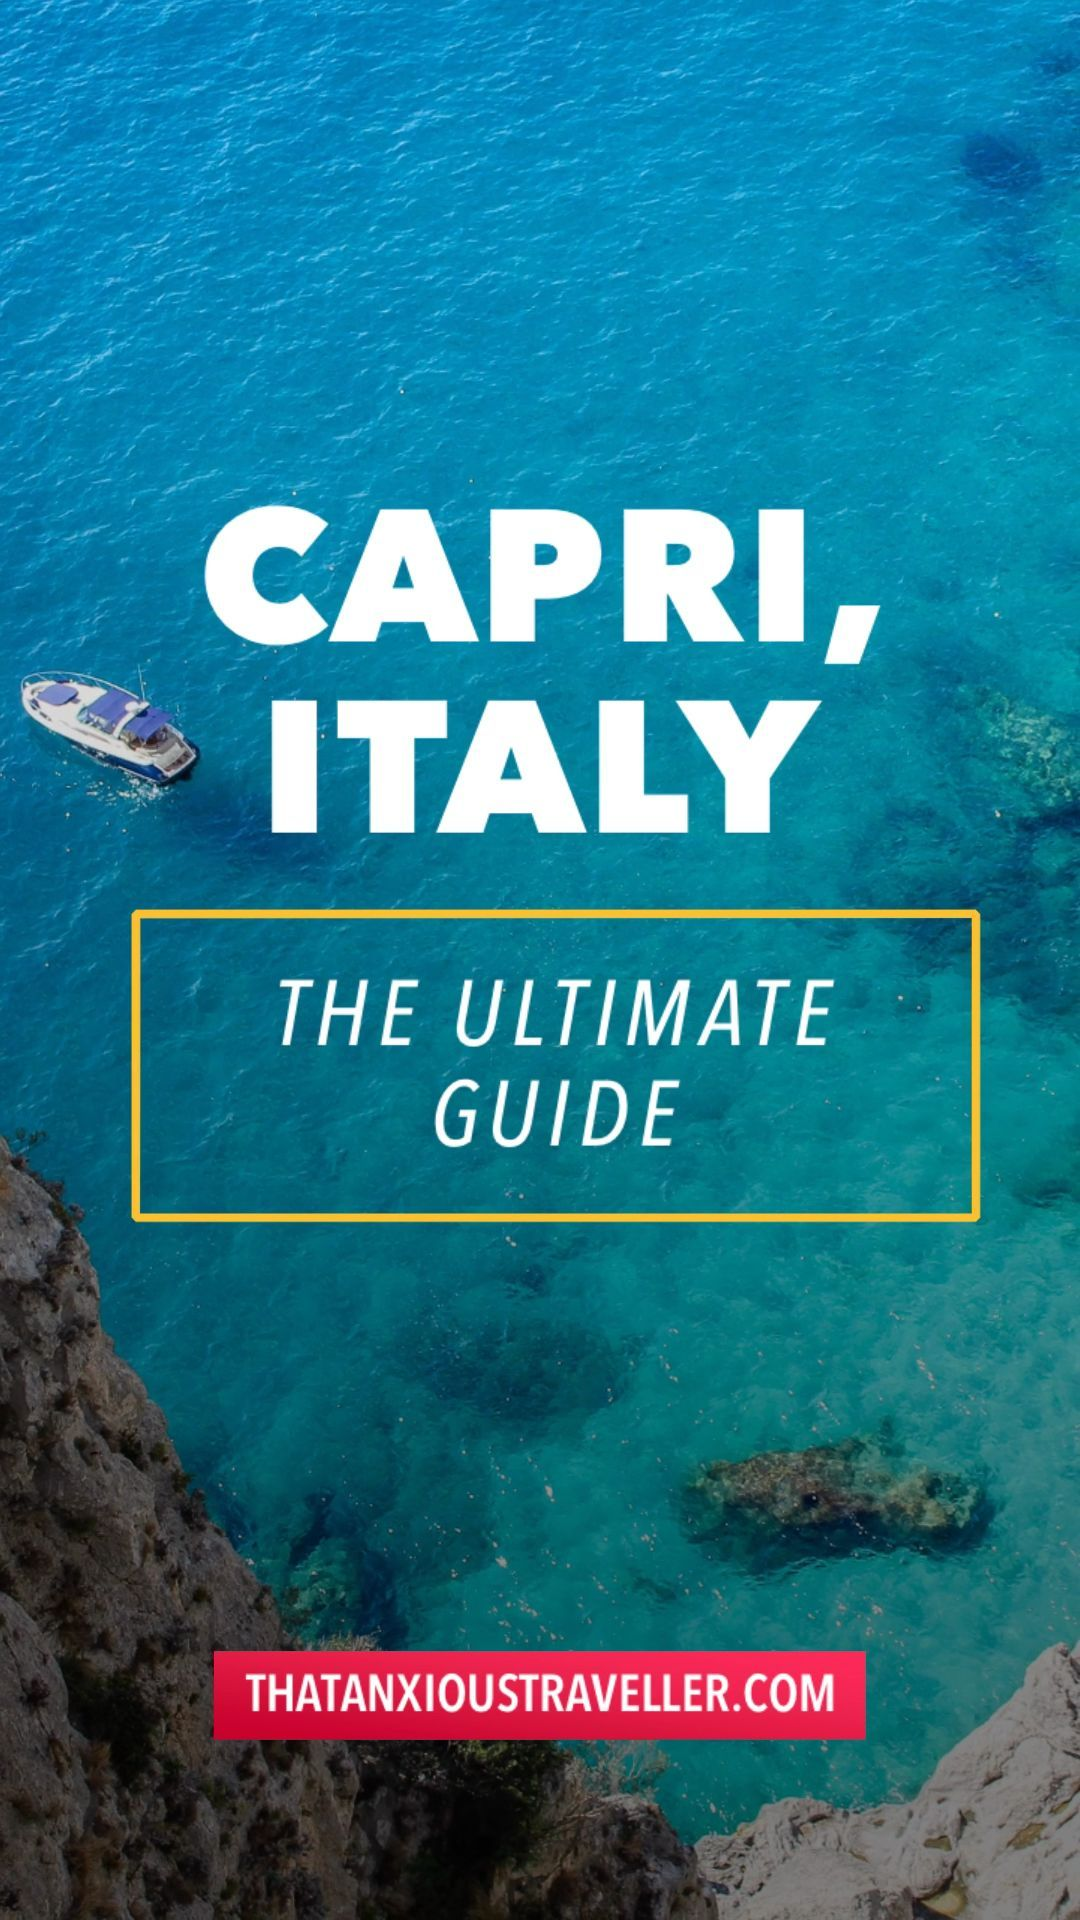 Looking for the best things to do in Capri, Italy? This guide has everything you're looking for! Featuring sights such as the Blue Grotto and Monte Solaro, romantic Capri photography spots for wedding photos, the best hotels in Capri, and even which outfits what to wear in Capri on the beach, you'll find all the info you need! Make the most of your Italy travel with this guide to Capri things to do!   travel destinations european videos italy #capri #capriitaly #italy #italytravel